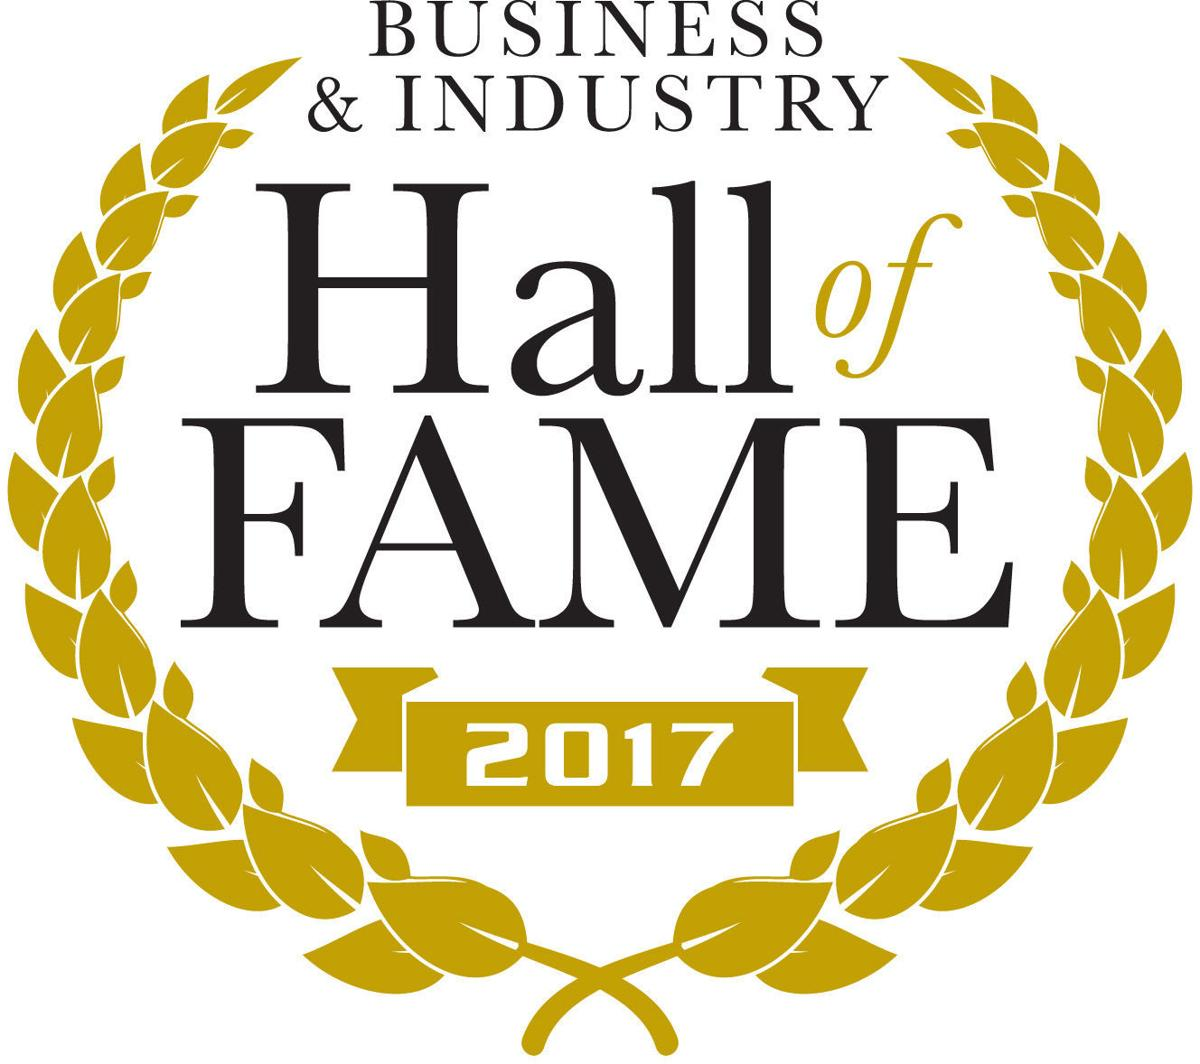 2017 Business & Industry Hall of Fame logo